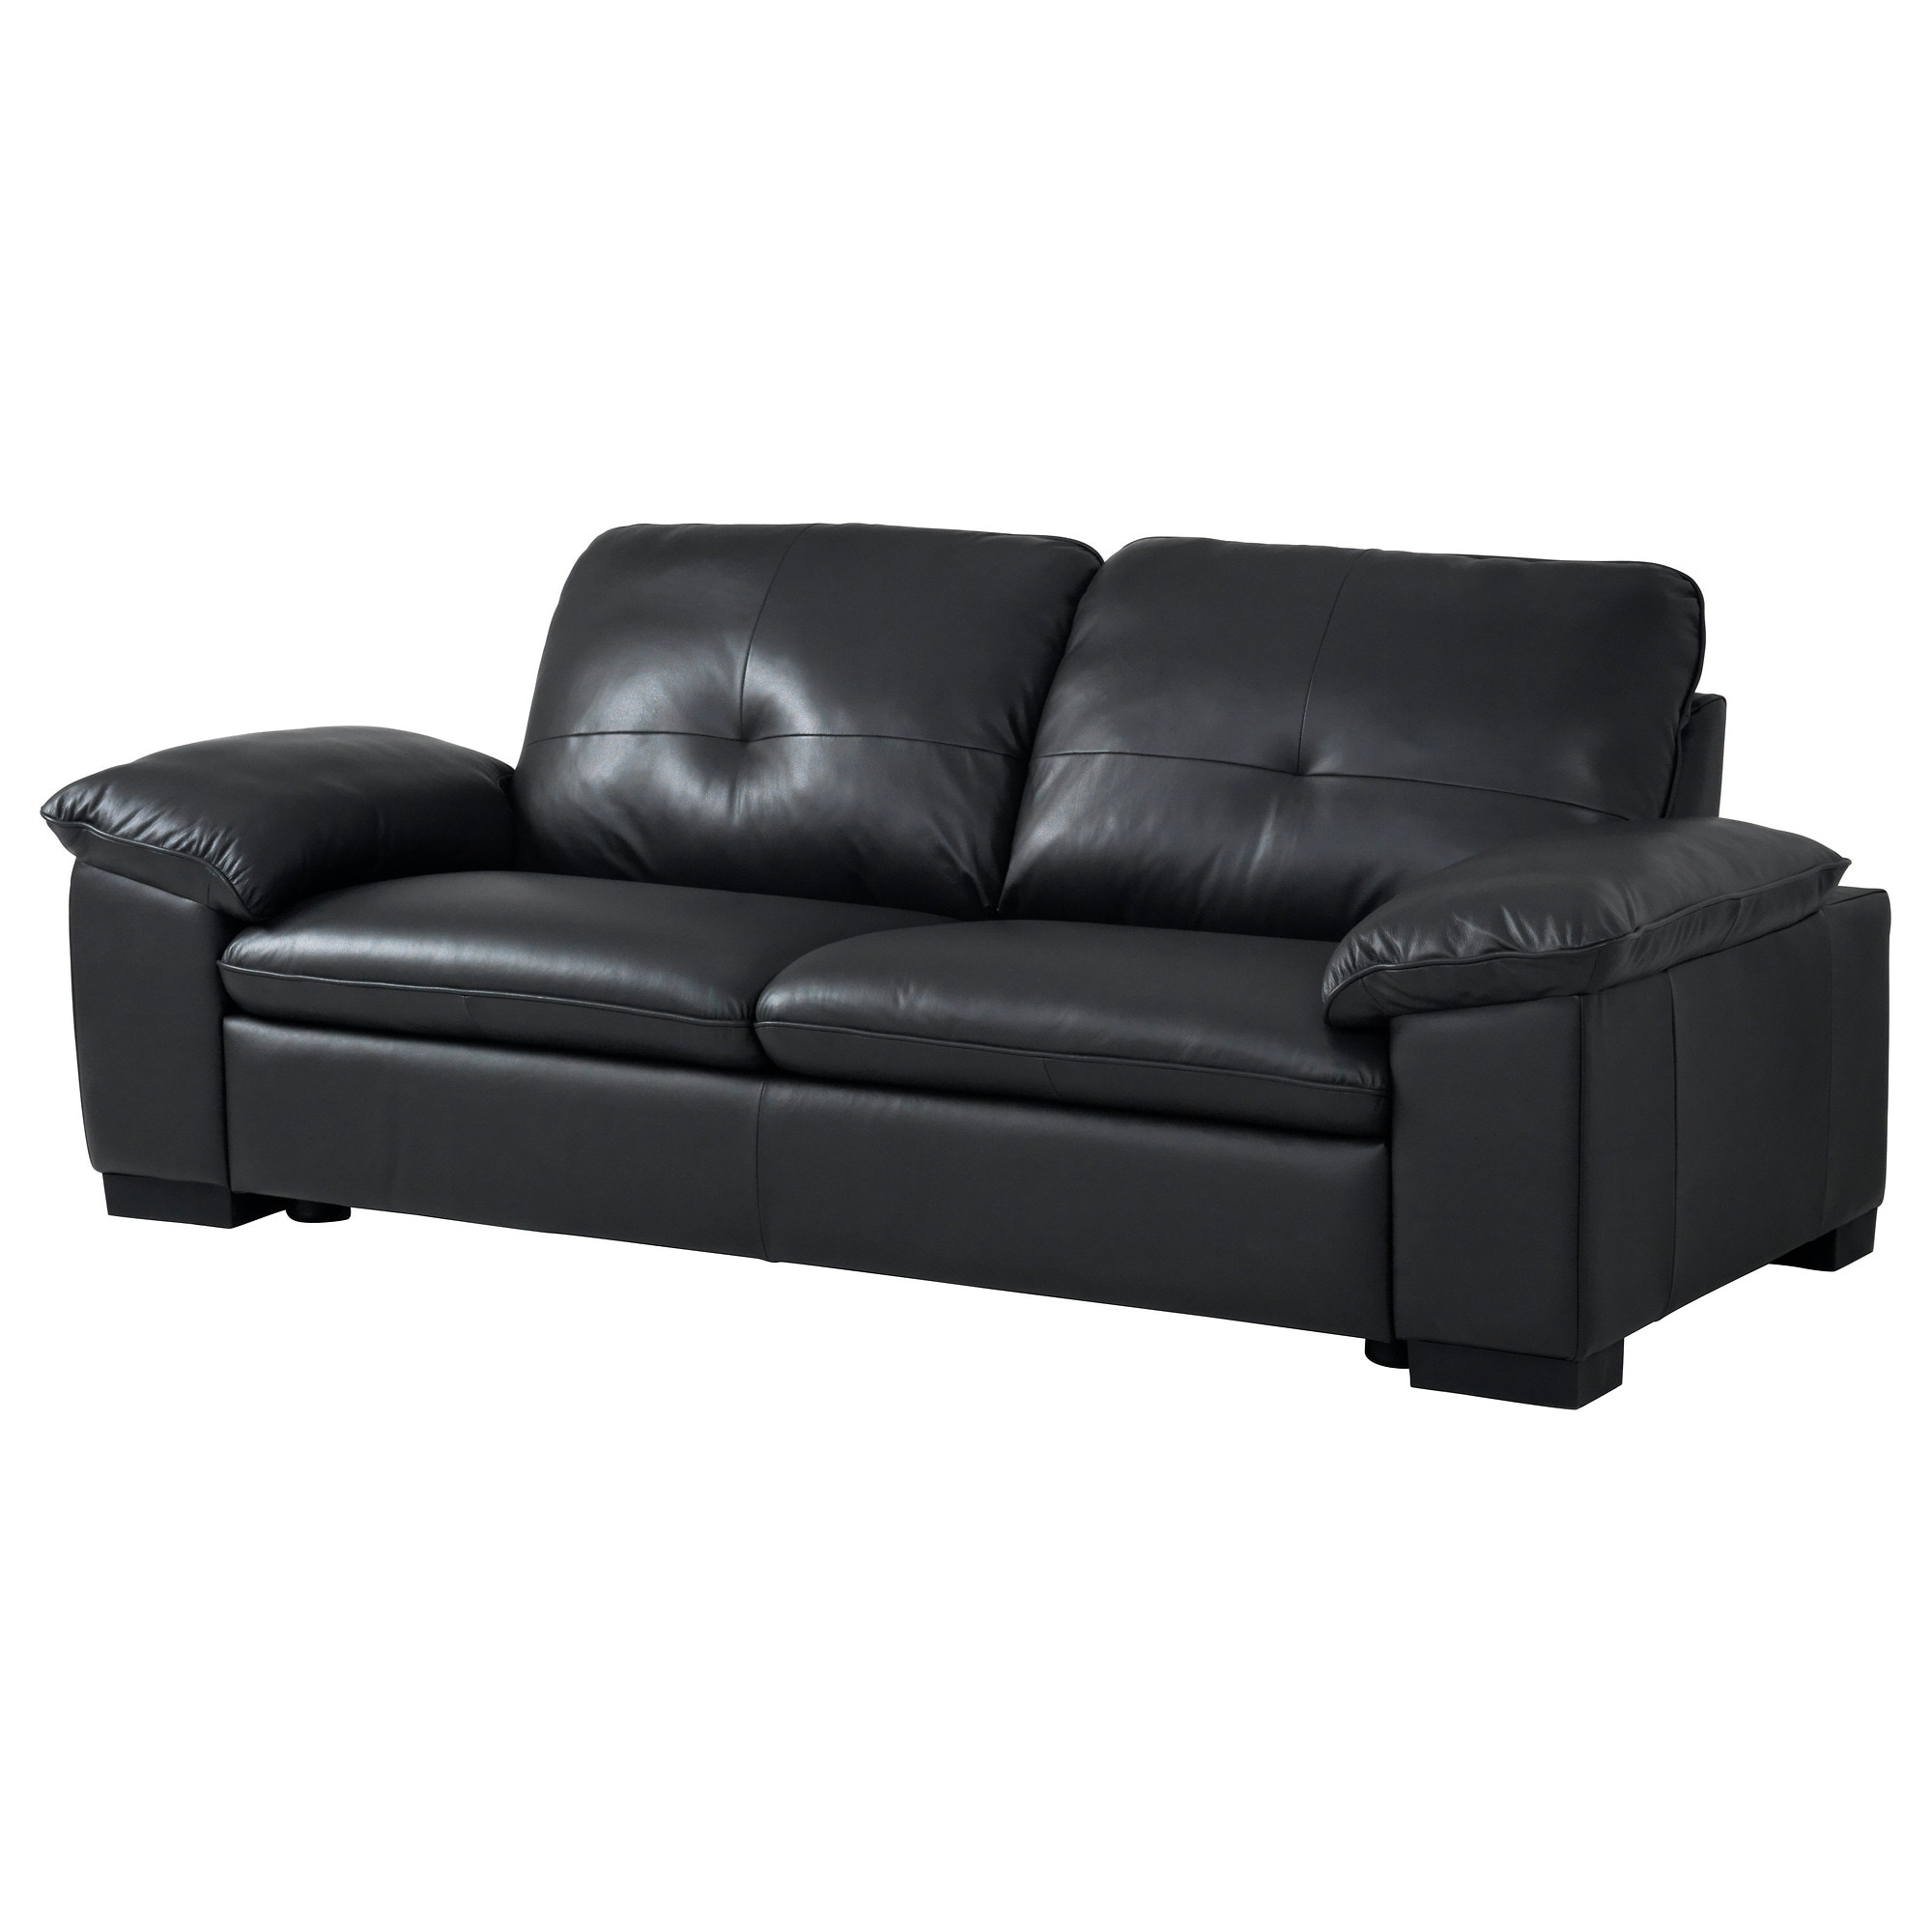 Ikea stockholm canap 3 5 places univers canap for Ikea sofas en cuir